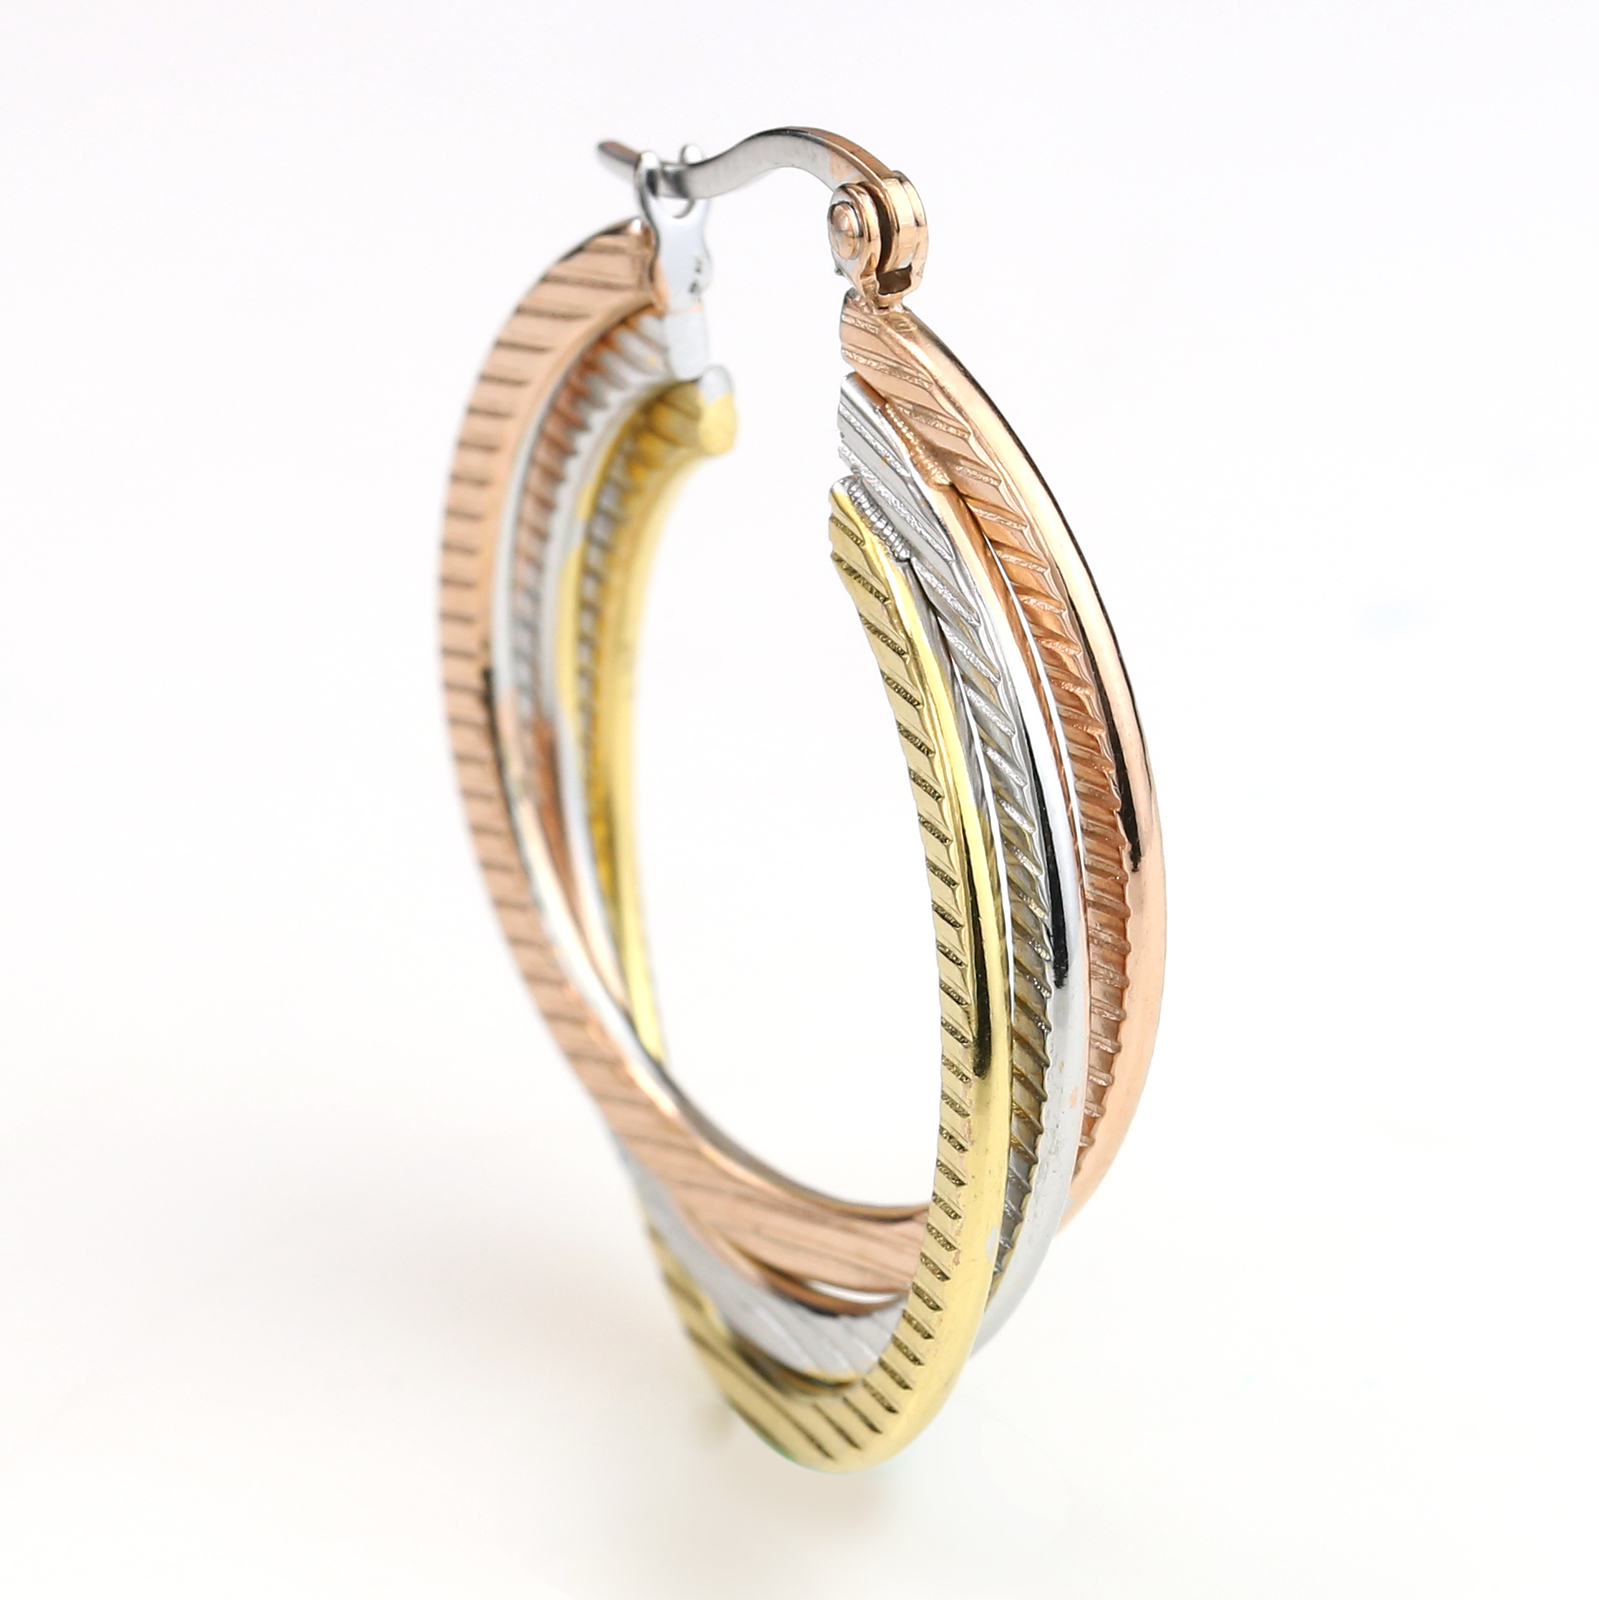 Twisted Tri-Color Silver, Gold & Rose Tone Hoop Earrings-United Elegance image 2